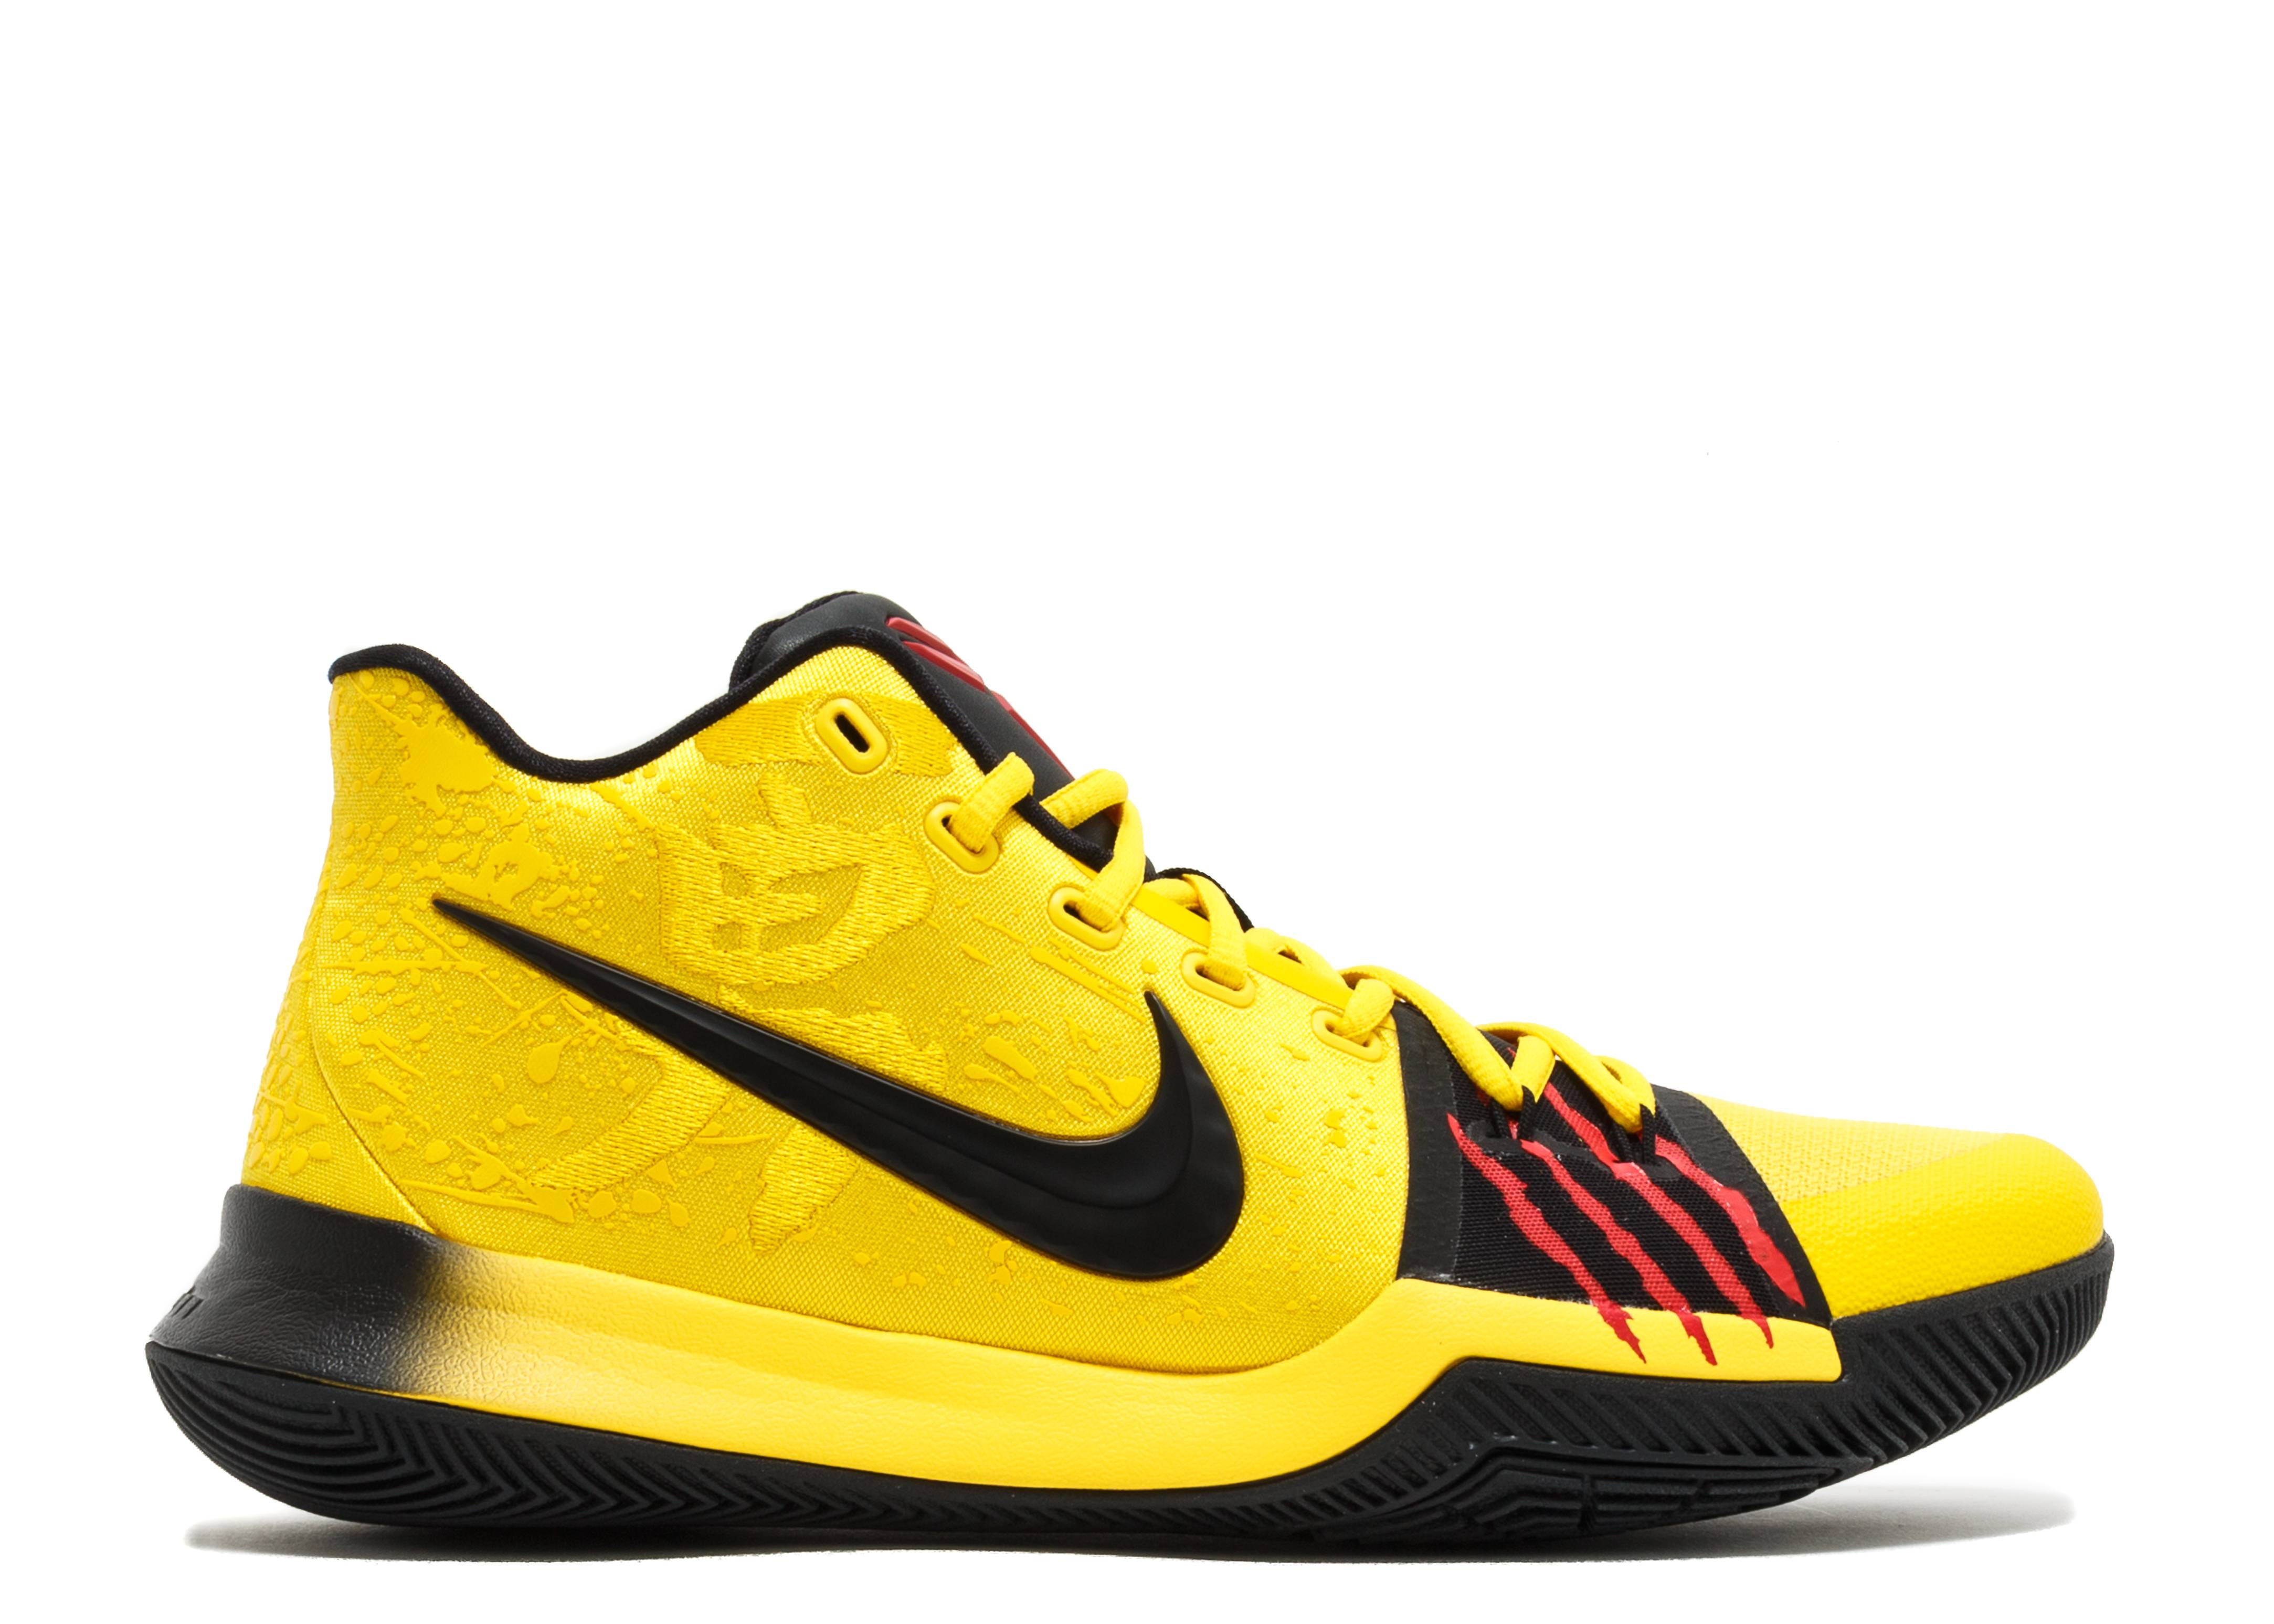 kyrie 3 shoes